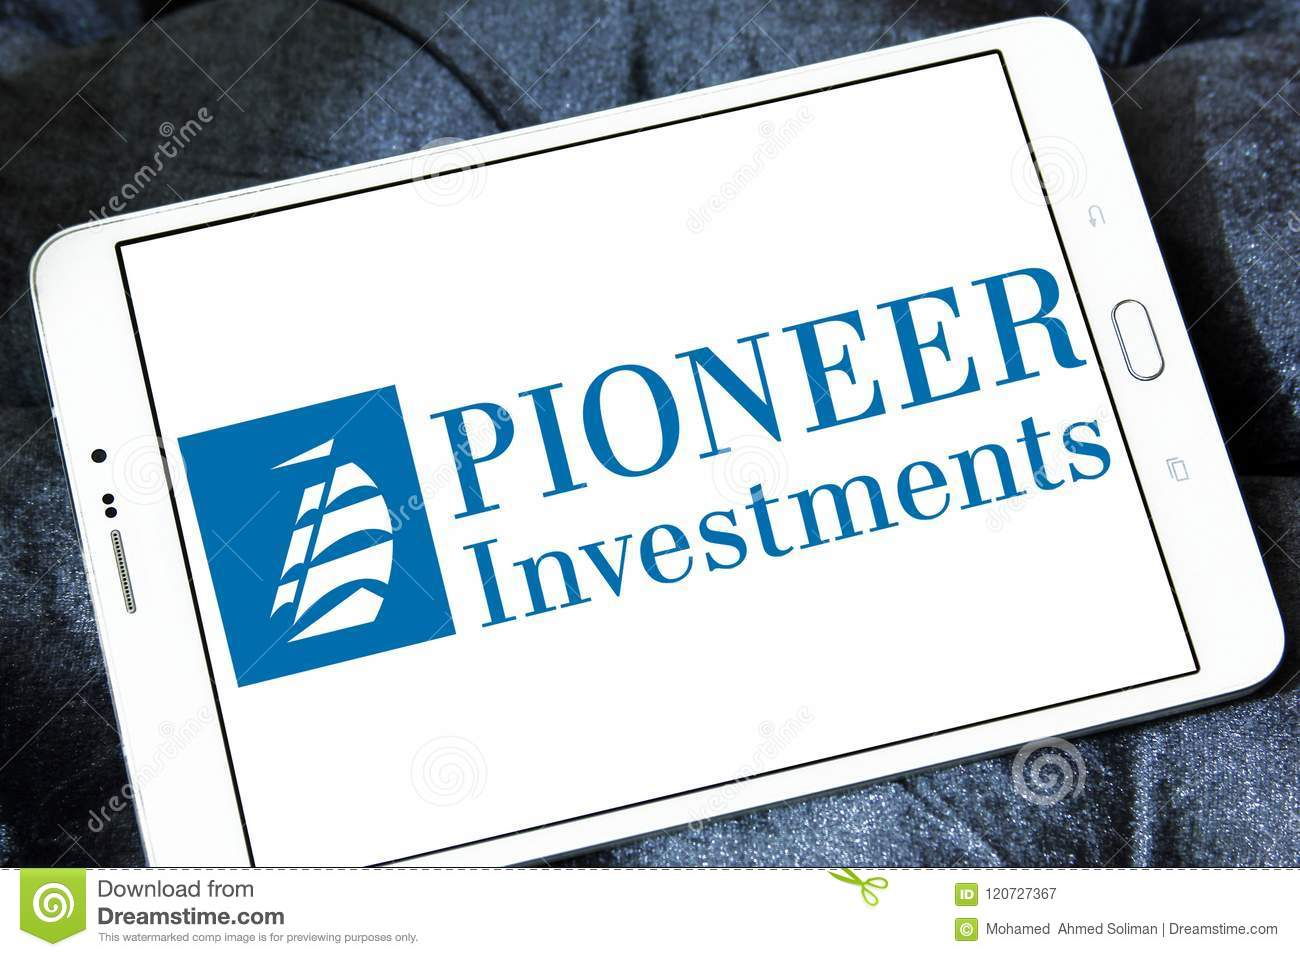 Pioneer global investments forex news gci trading open